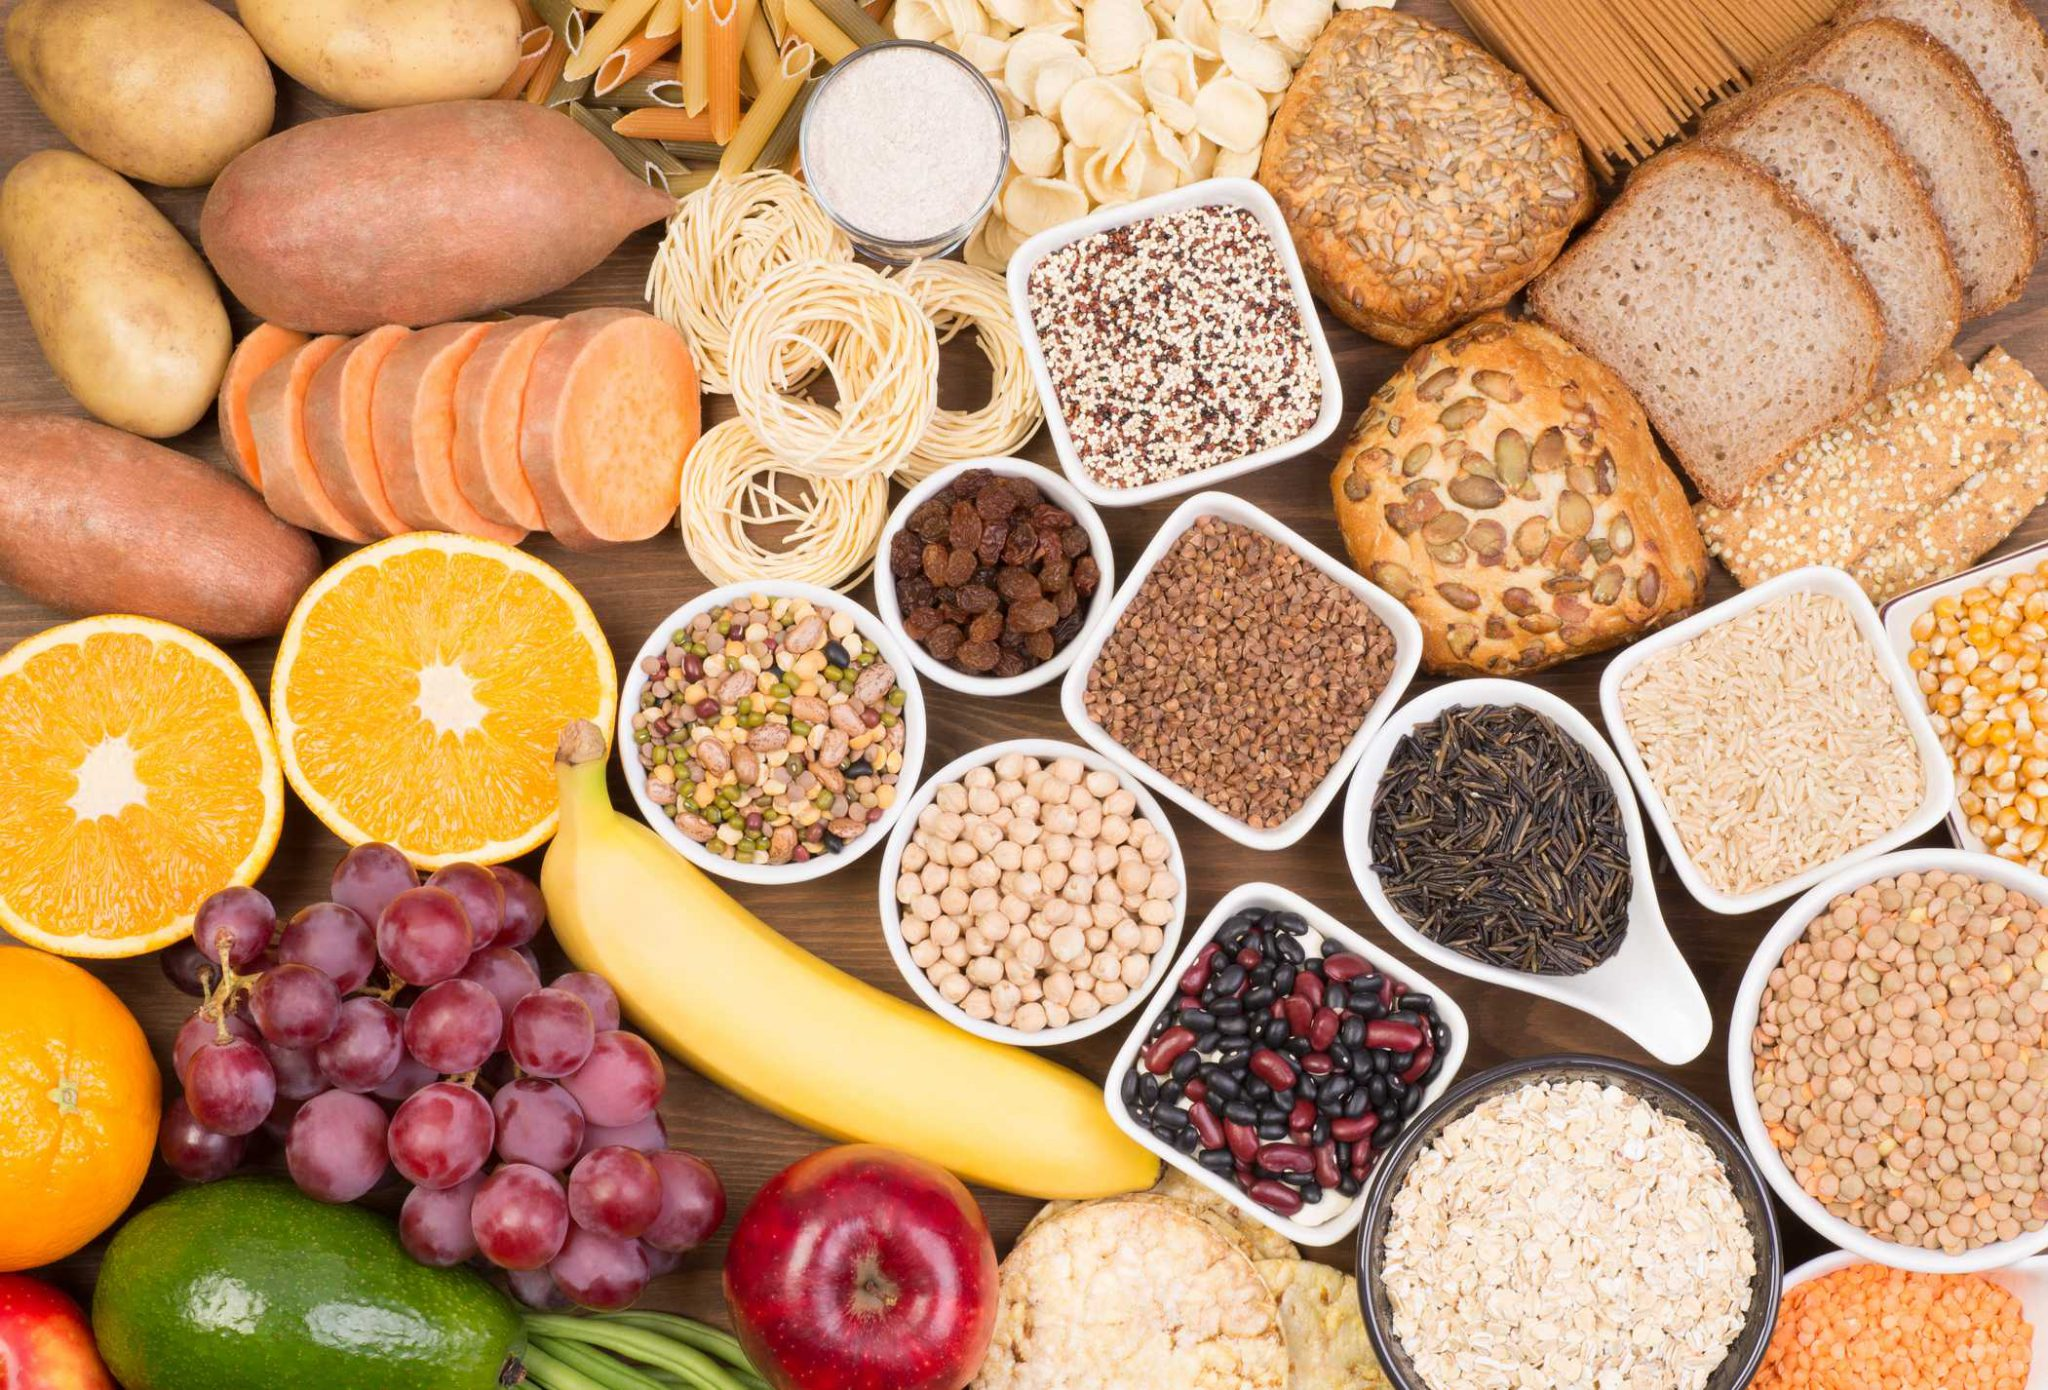 Carbohydrates and the Glycemic Index